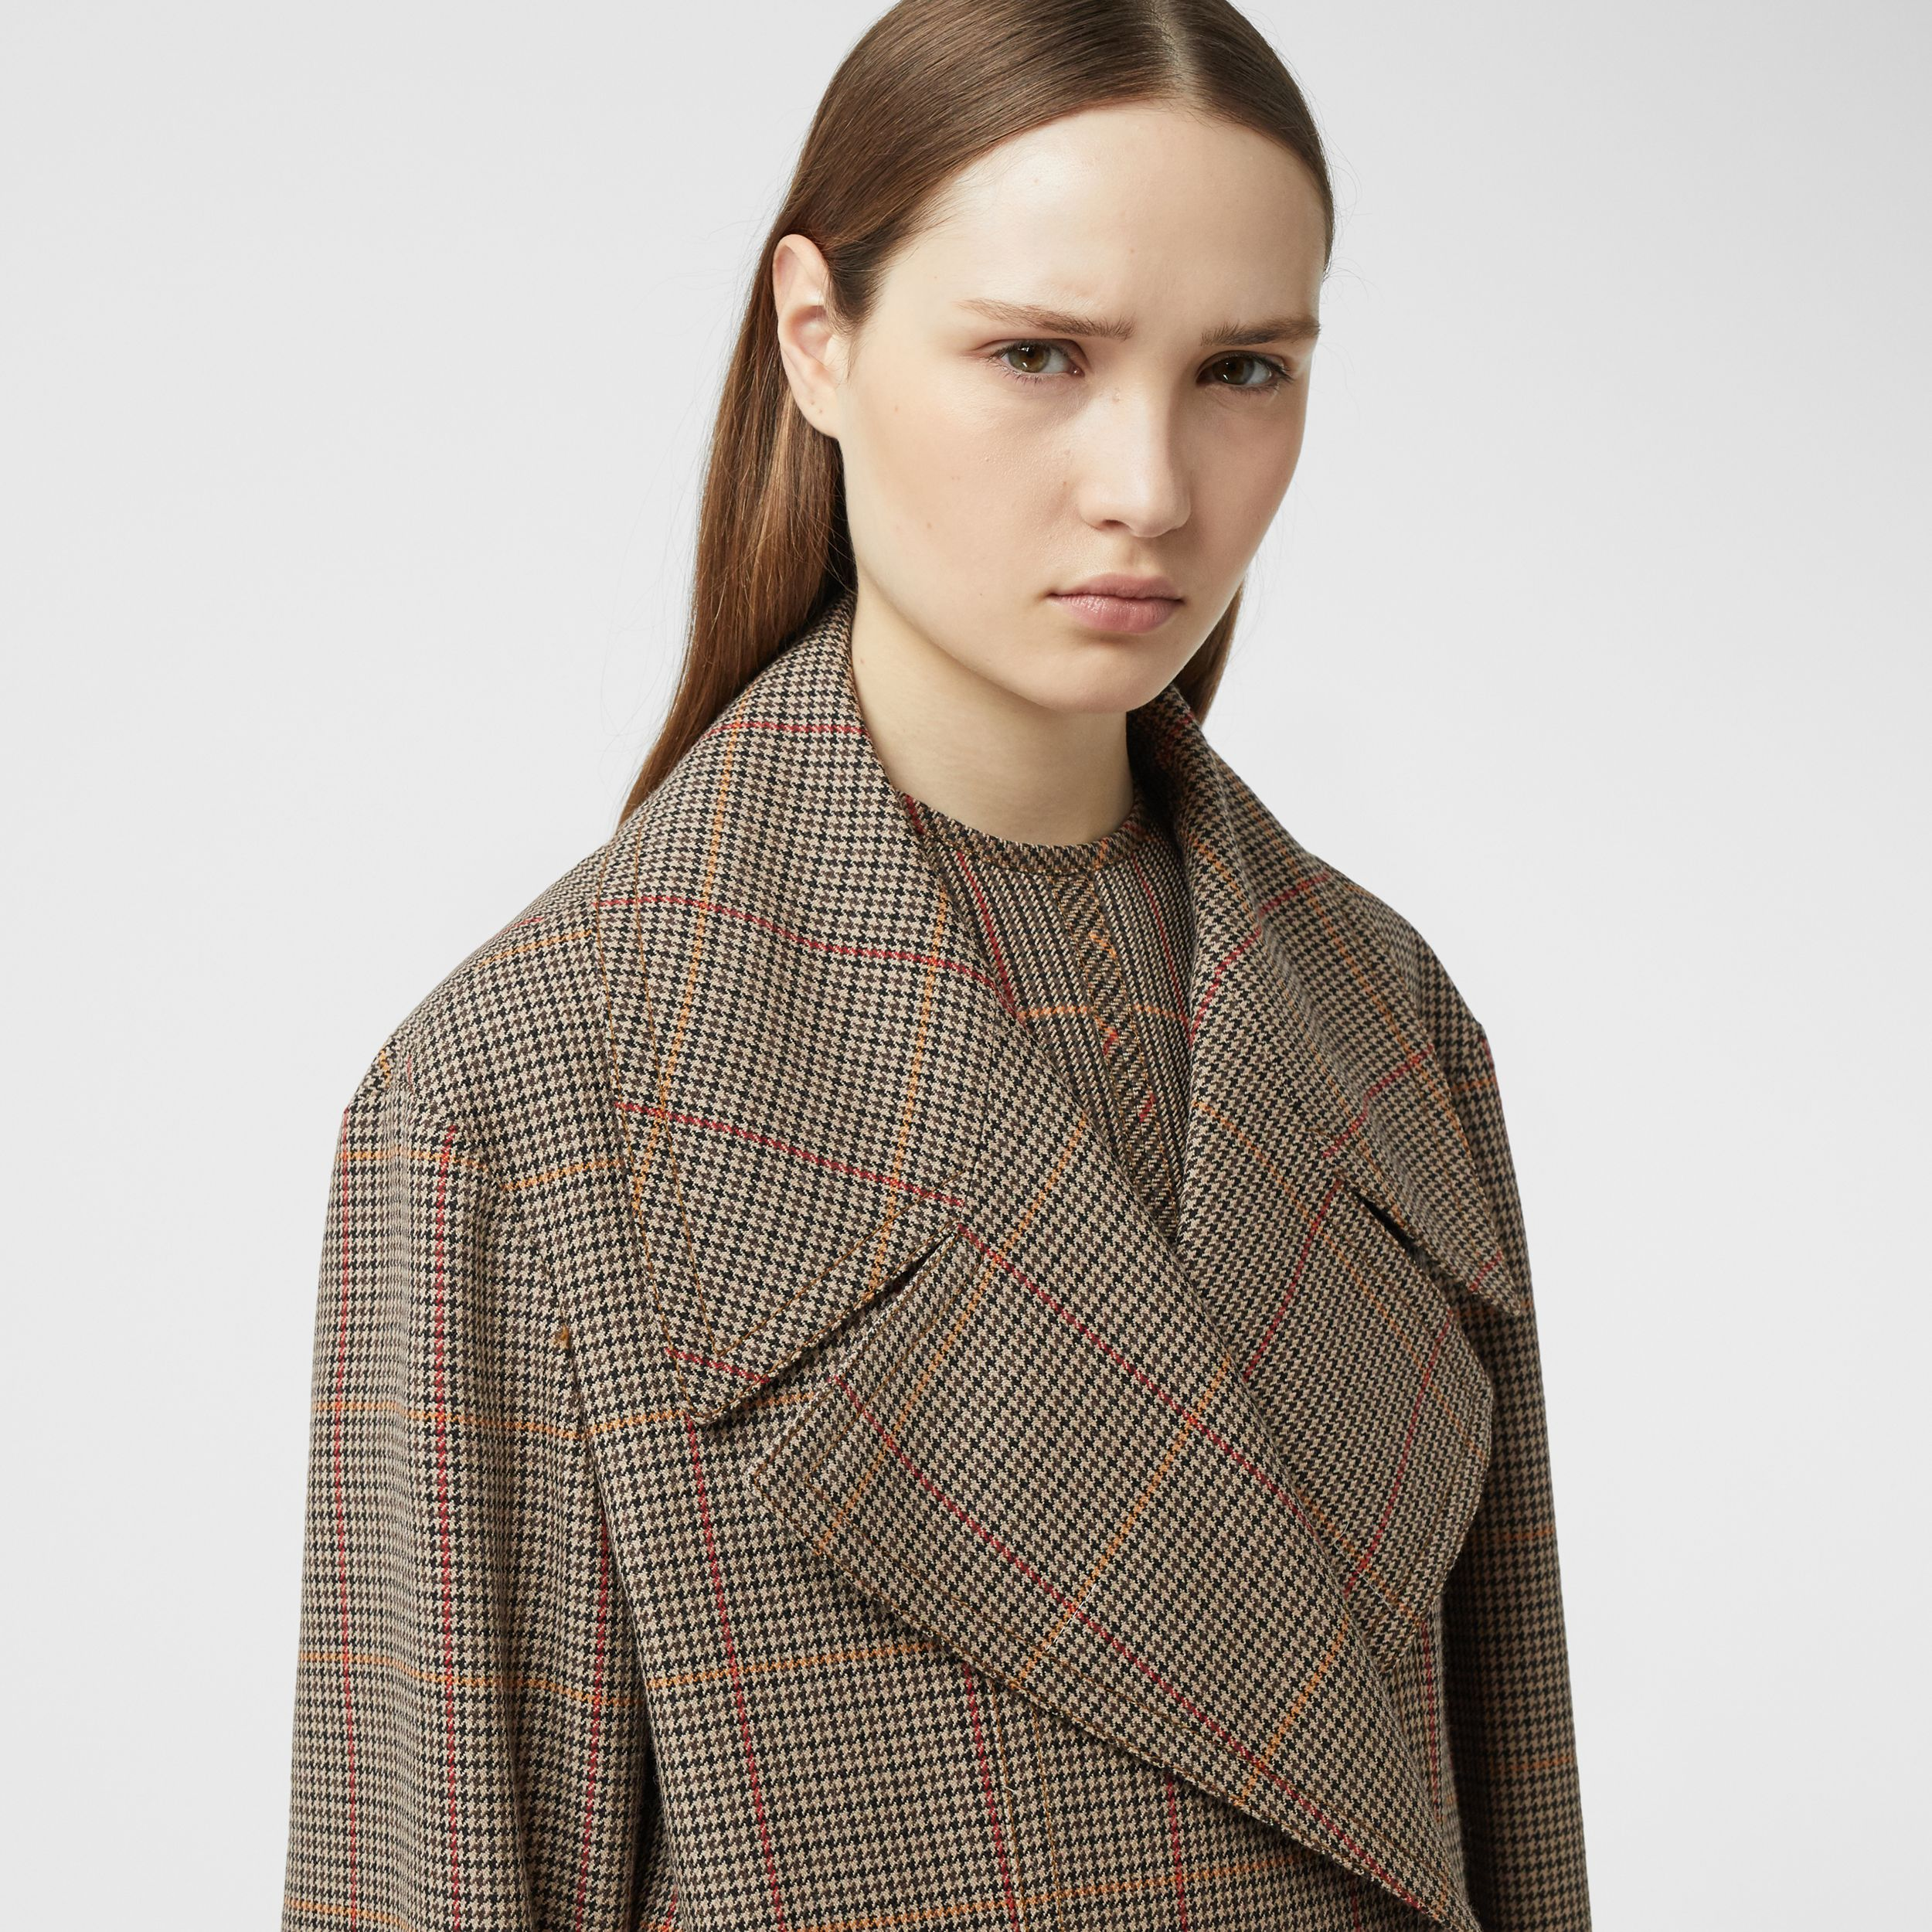 Cappotto doppiopetto in lana con motivo pied-de-poule (Marrone Scuro) - Donna | Burberry - 2